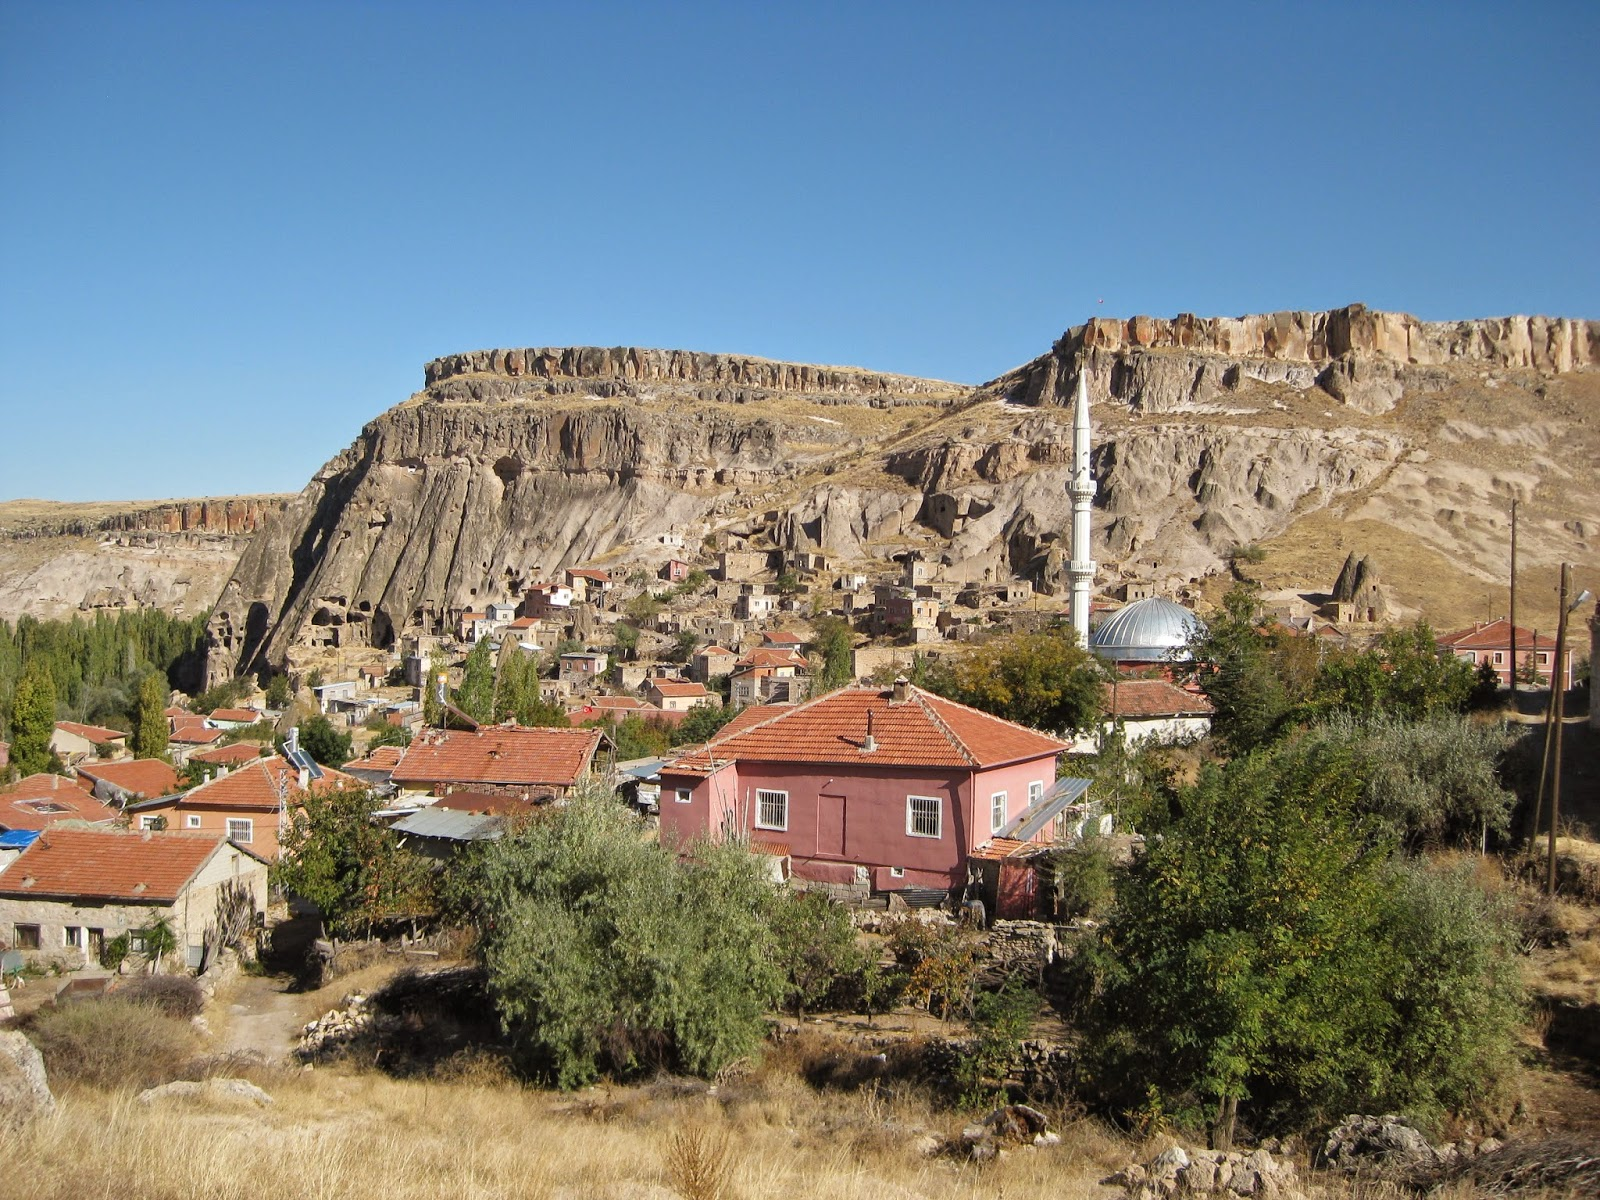 Cappadocia - Interesting view of a city among the rugged terrain